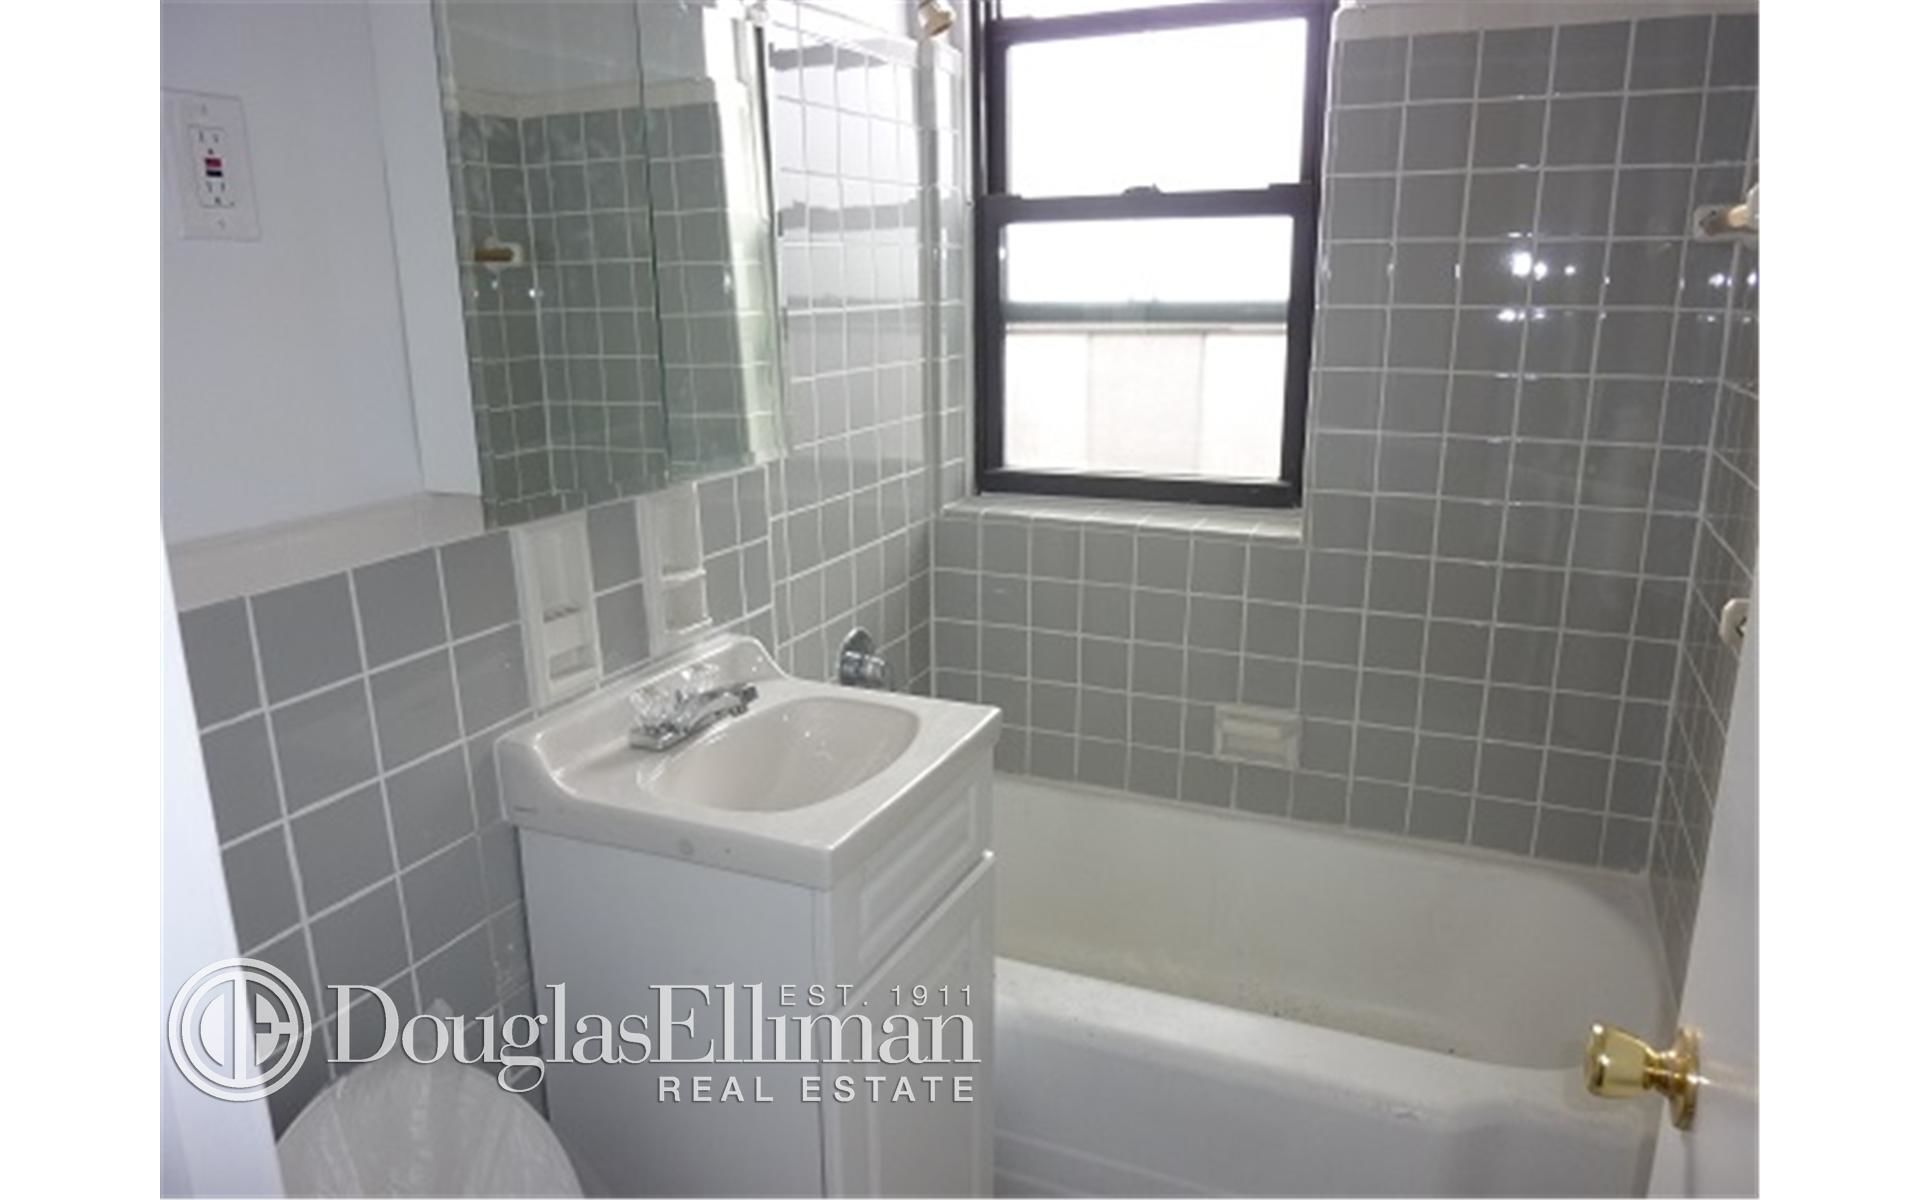 285 E 35th St, APT 7F Photo 3 - ELLIMAN-2322830